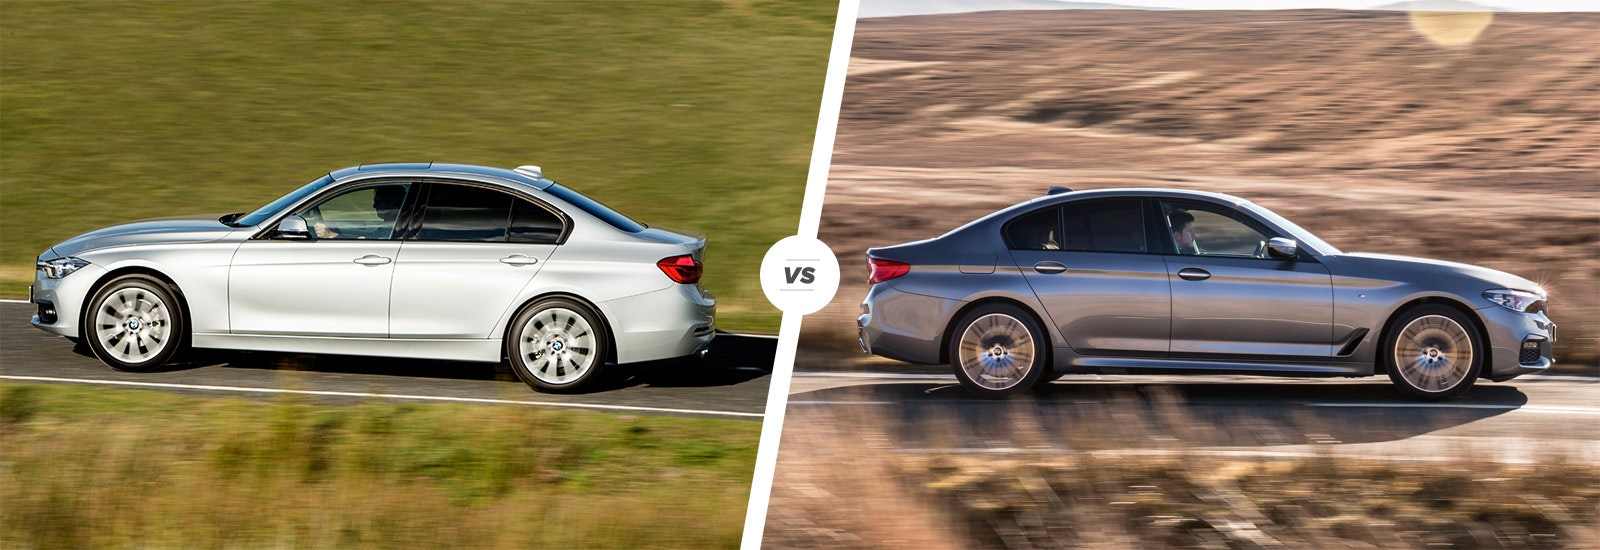 Bmw 3 Series Vs 5 Series Which Should You Buy Carwow